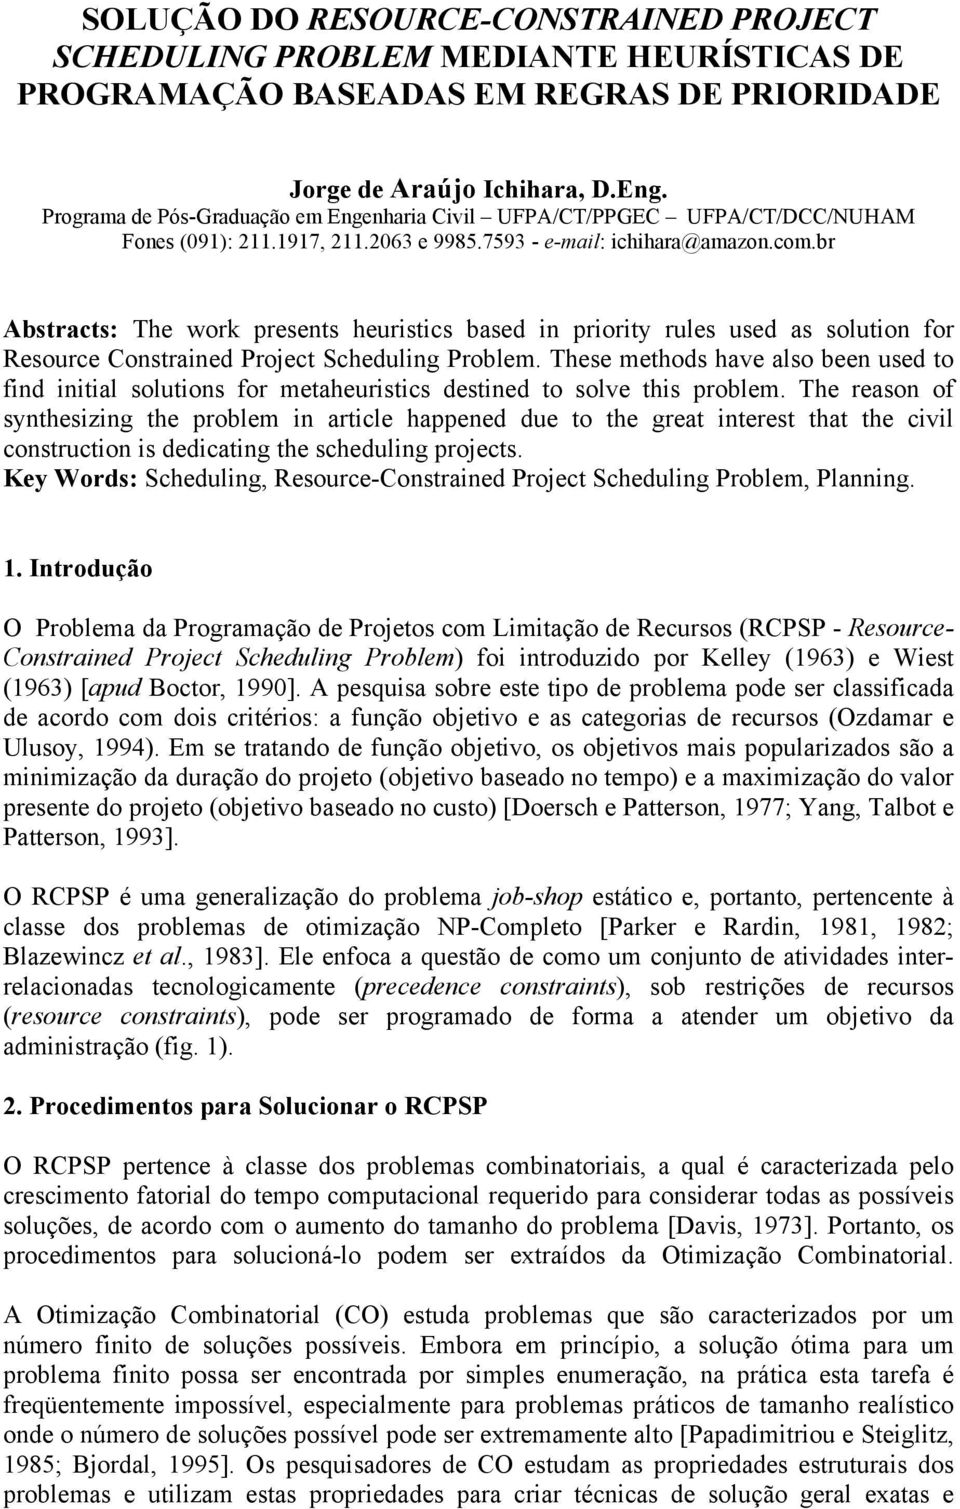 br Abstracts: The work presents heuristics based in priority rules used as solution for Resource Constrained Project Scheduling Problem.